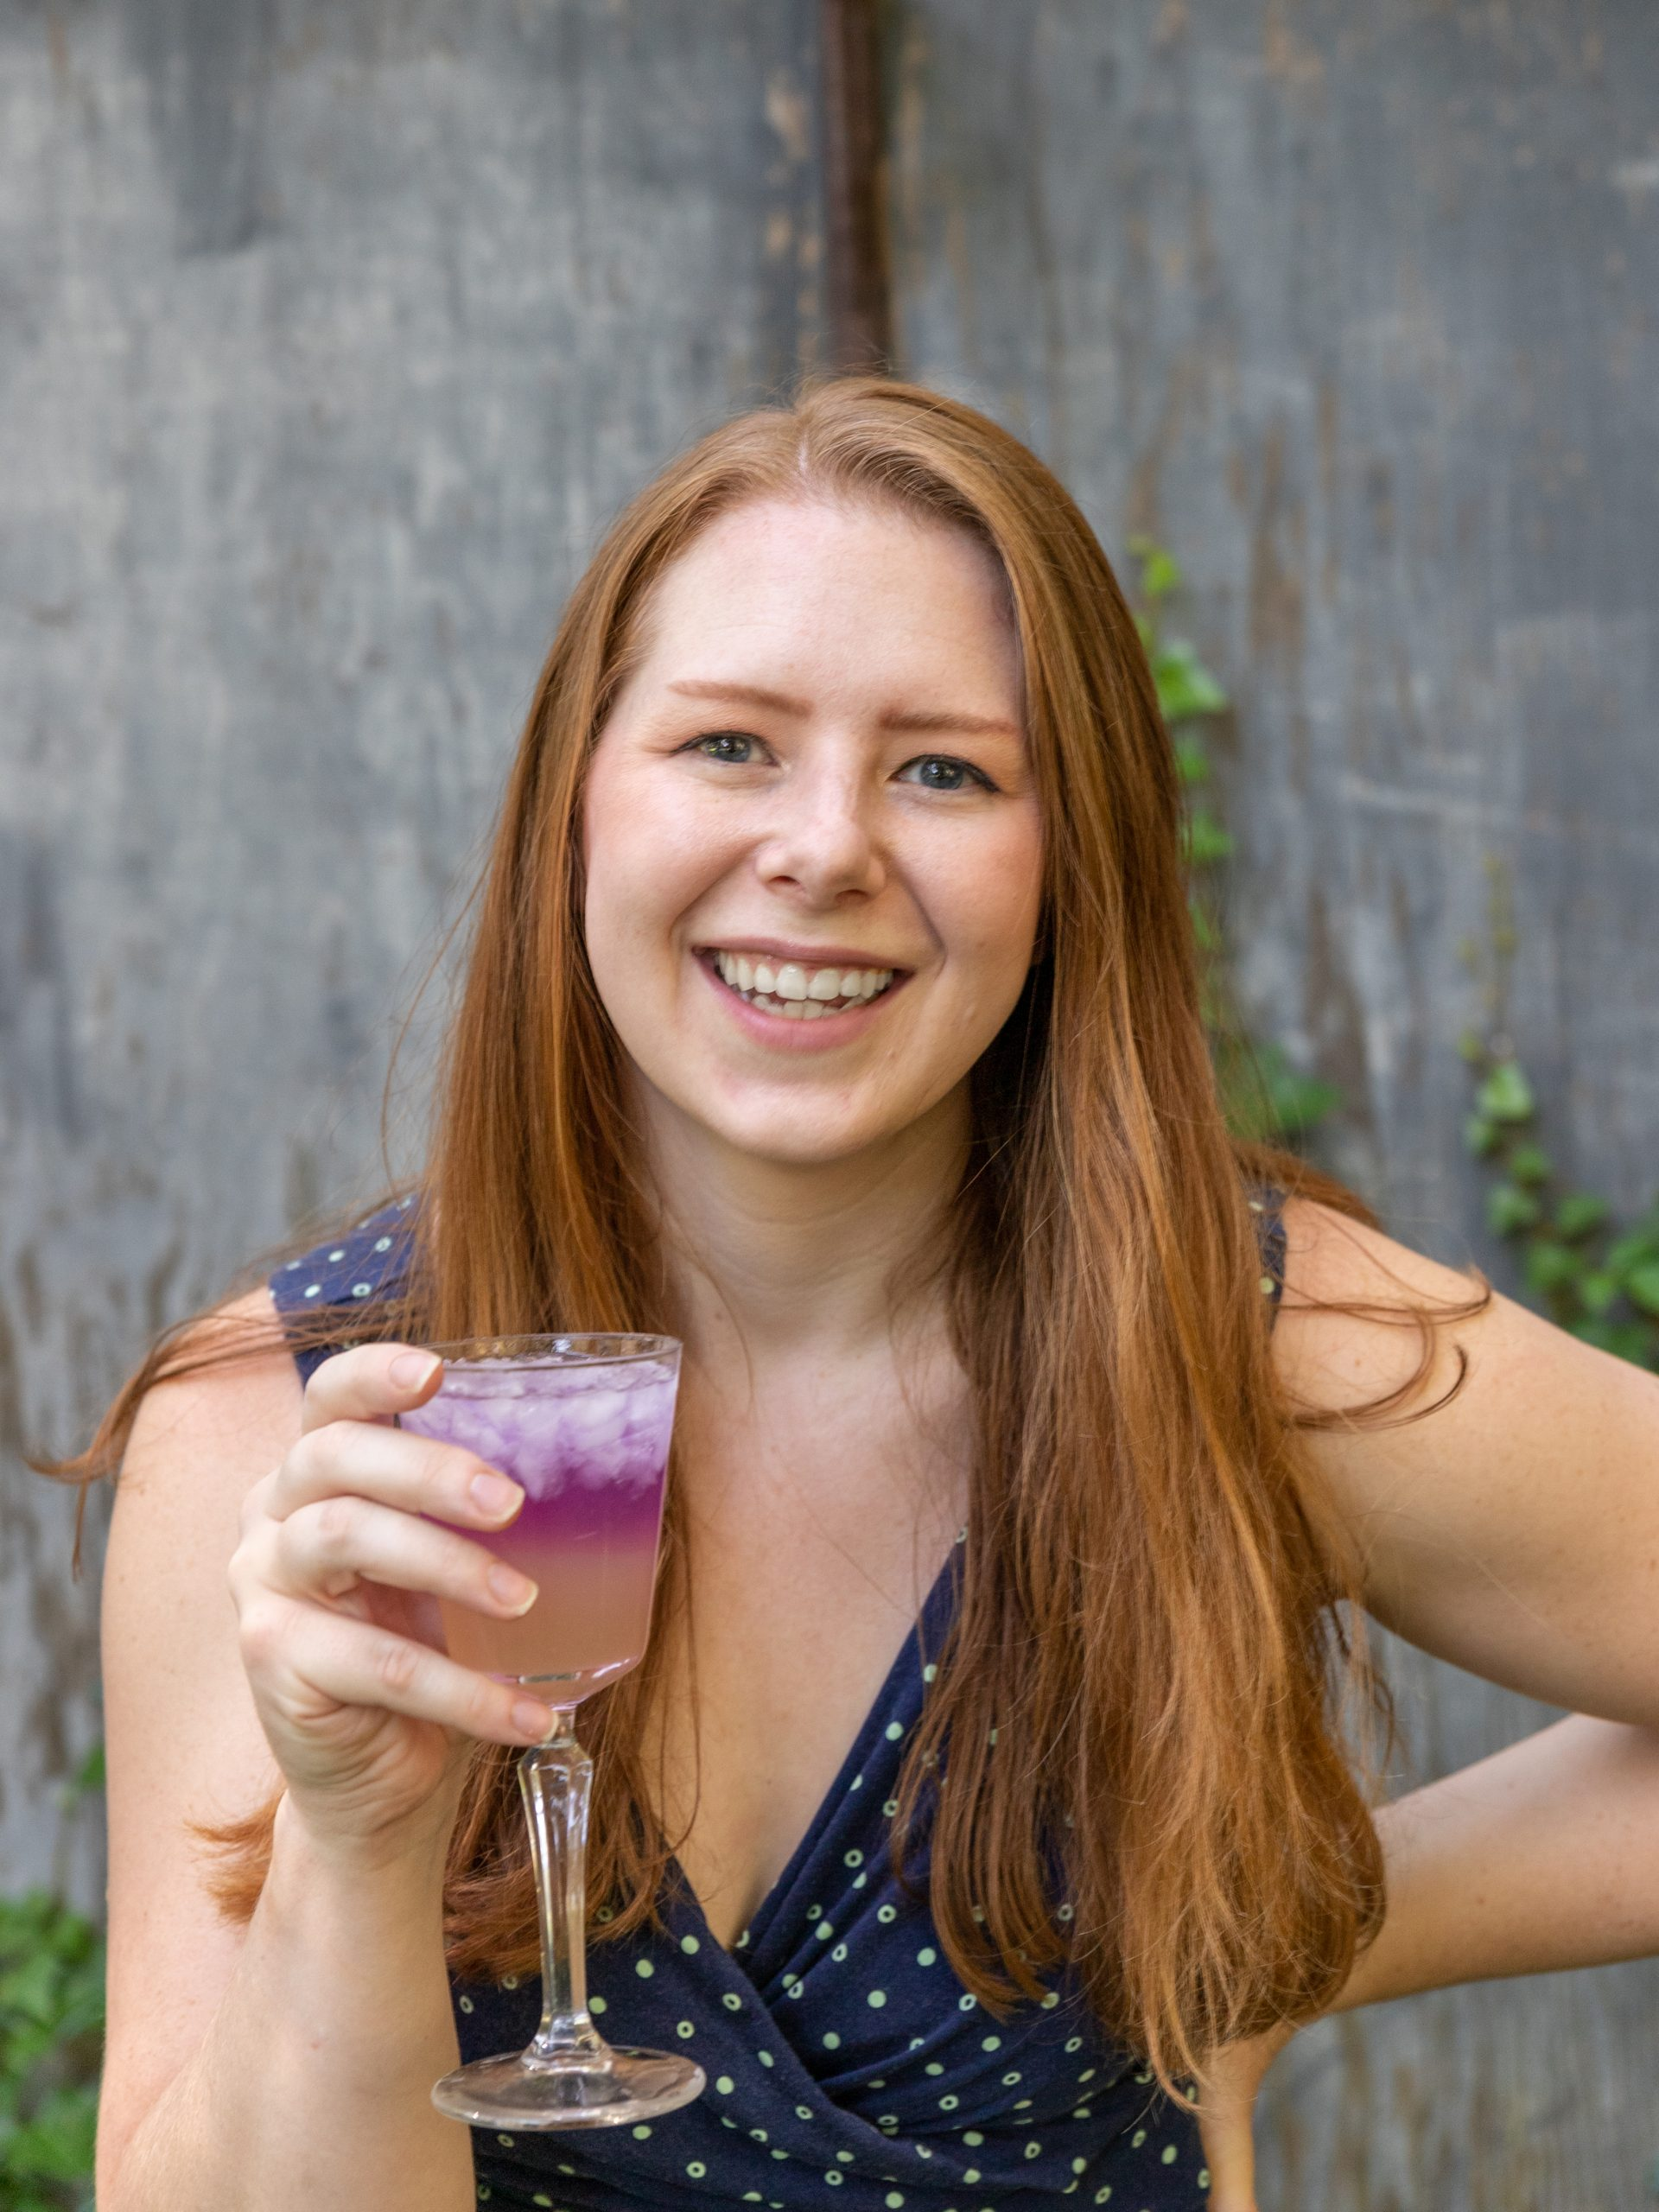 Sarah Gualtieri The Boozy Ginger Food and Beverage Photographer Cocktail Blog